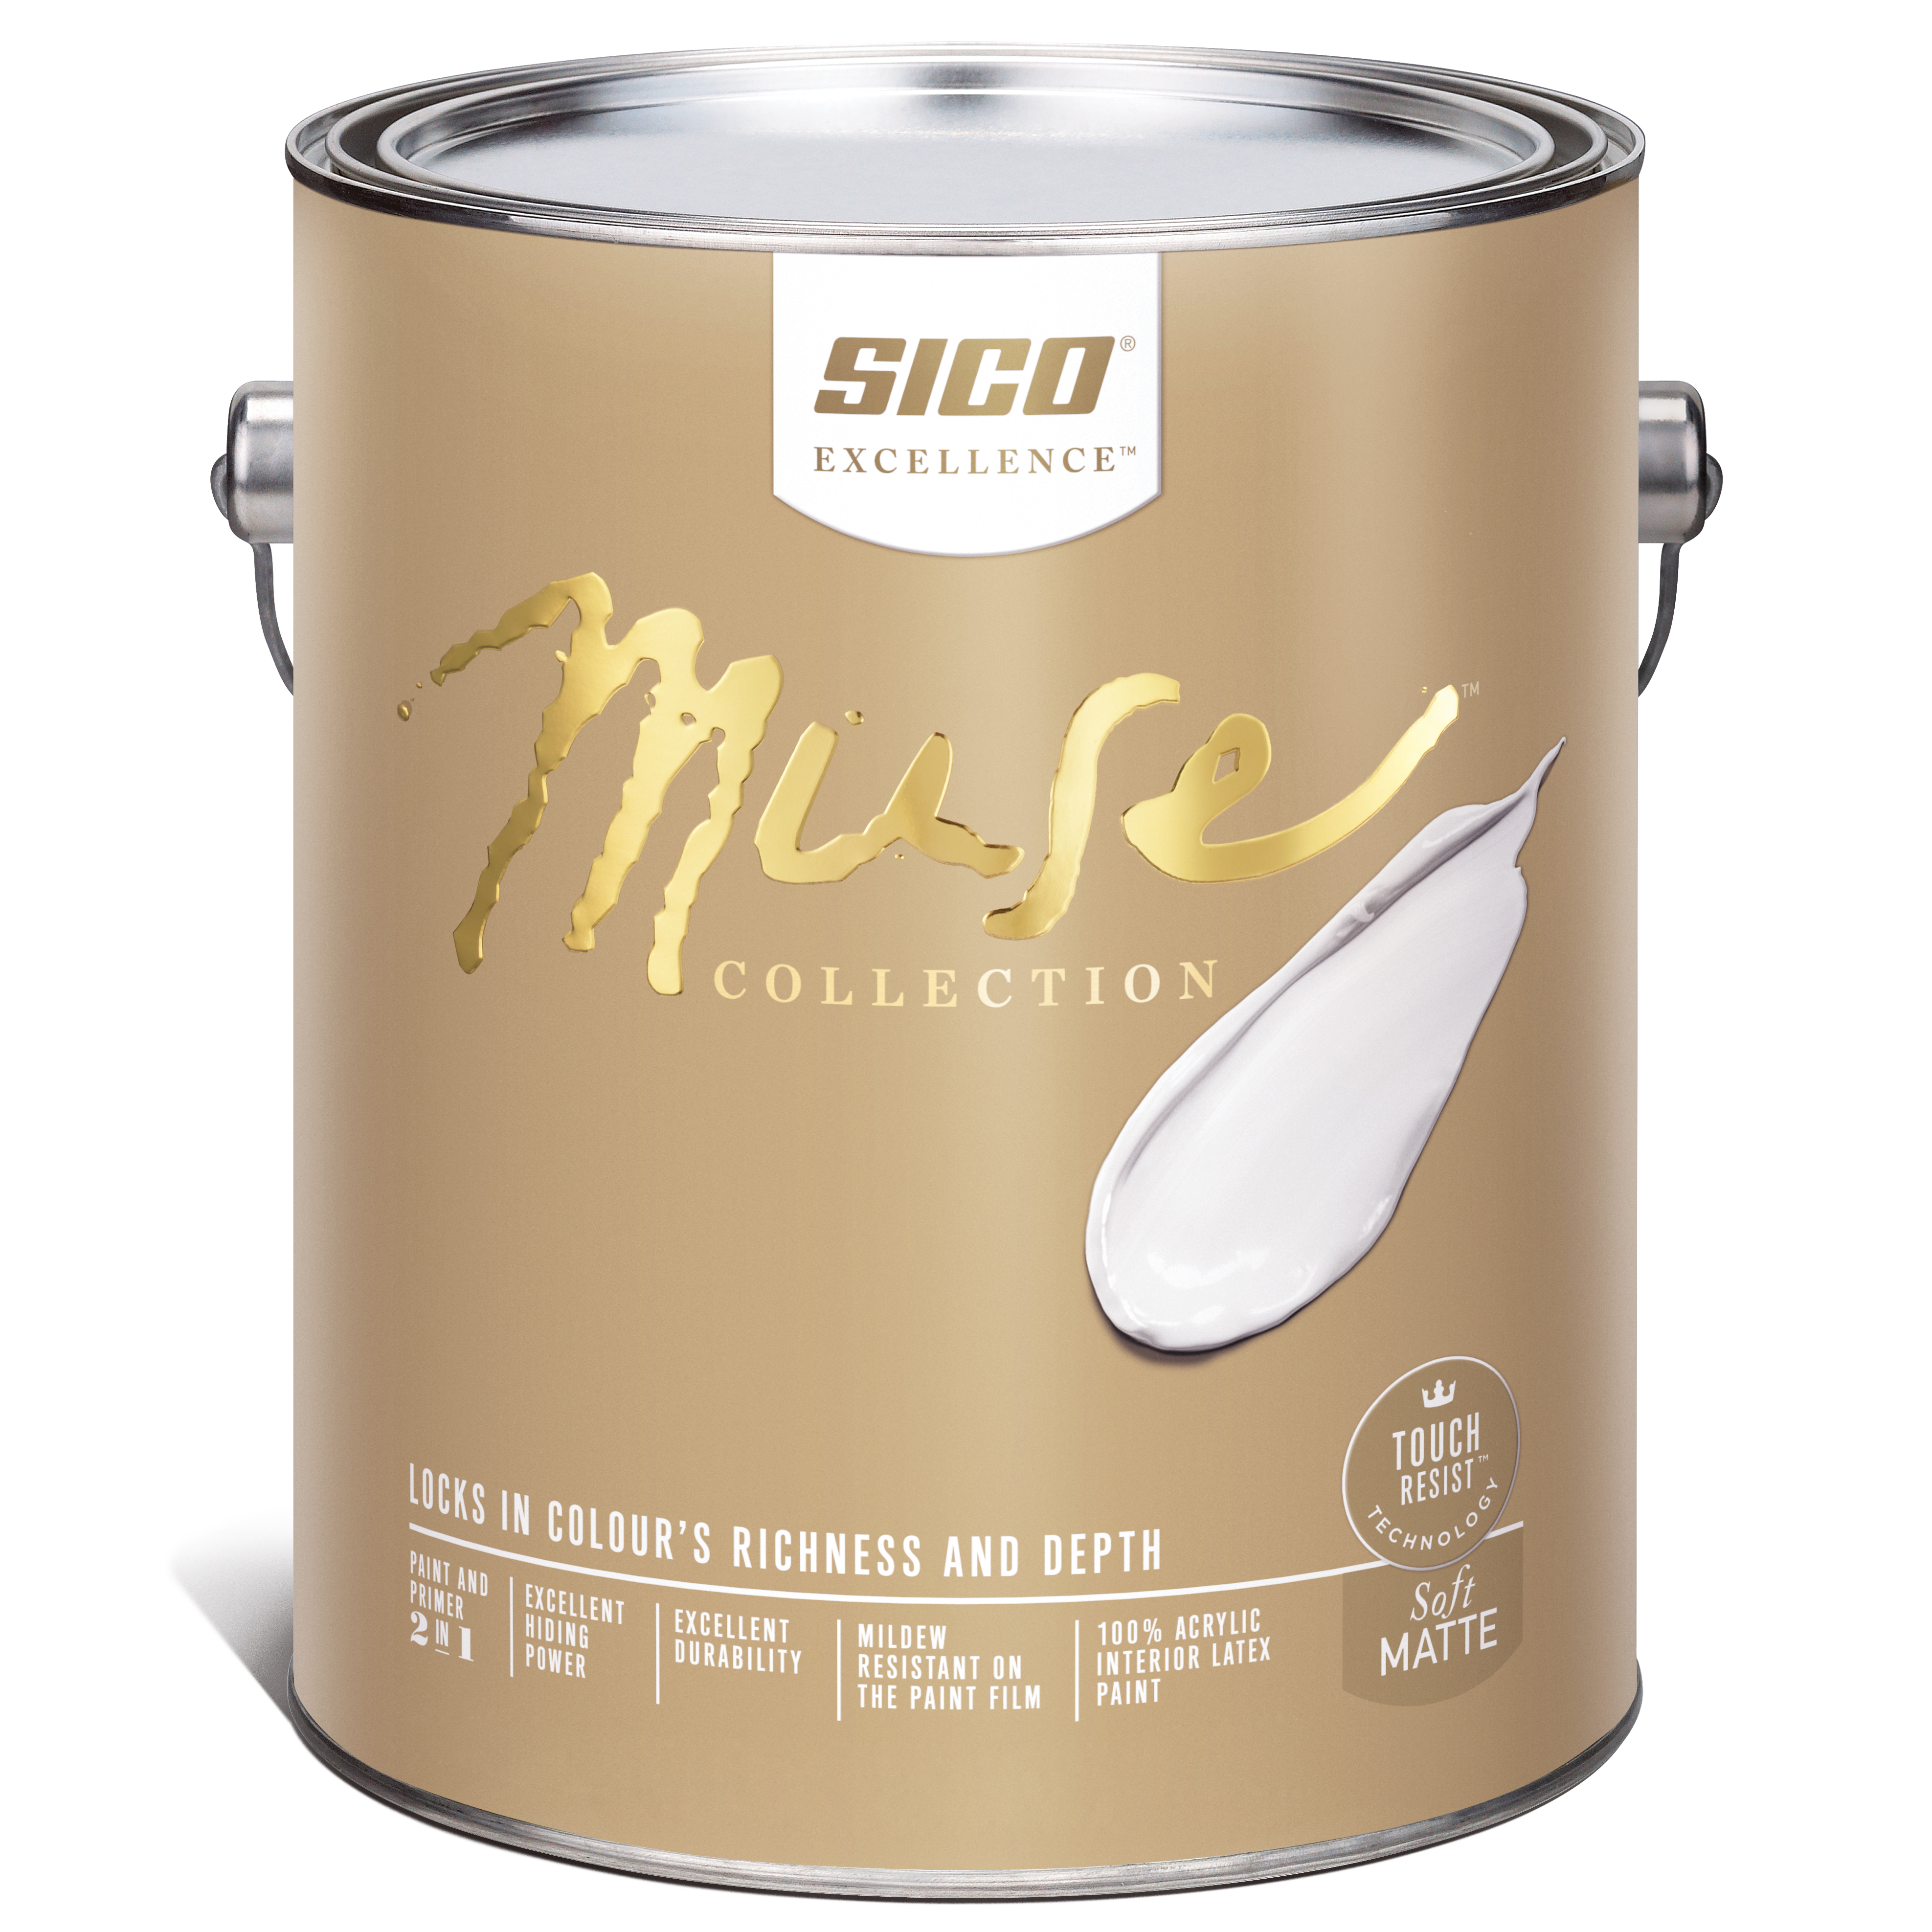 What Sheen Is Sico Kitchen Paint